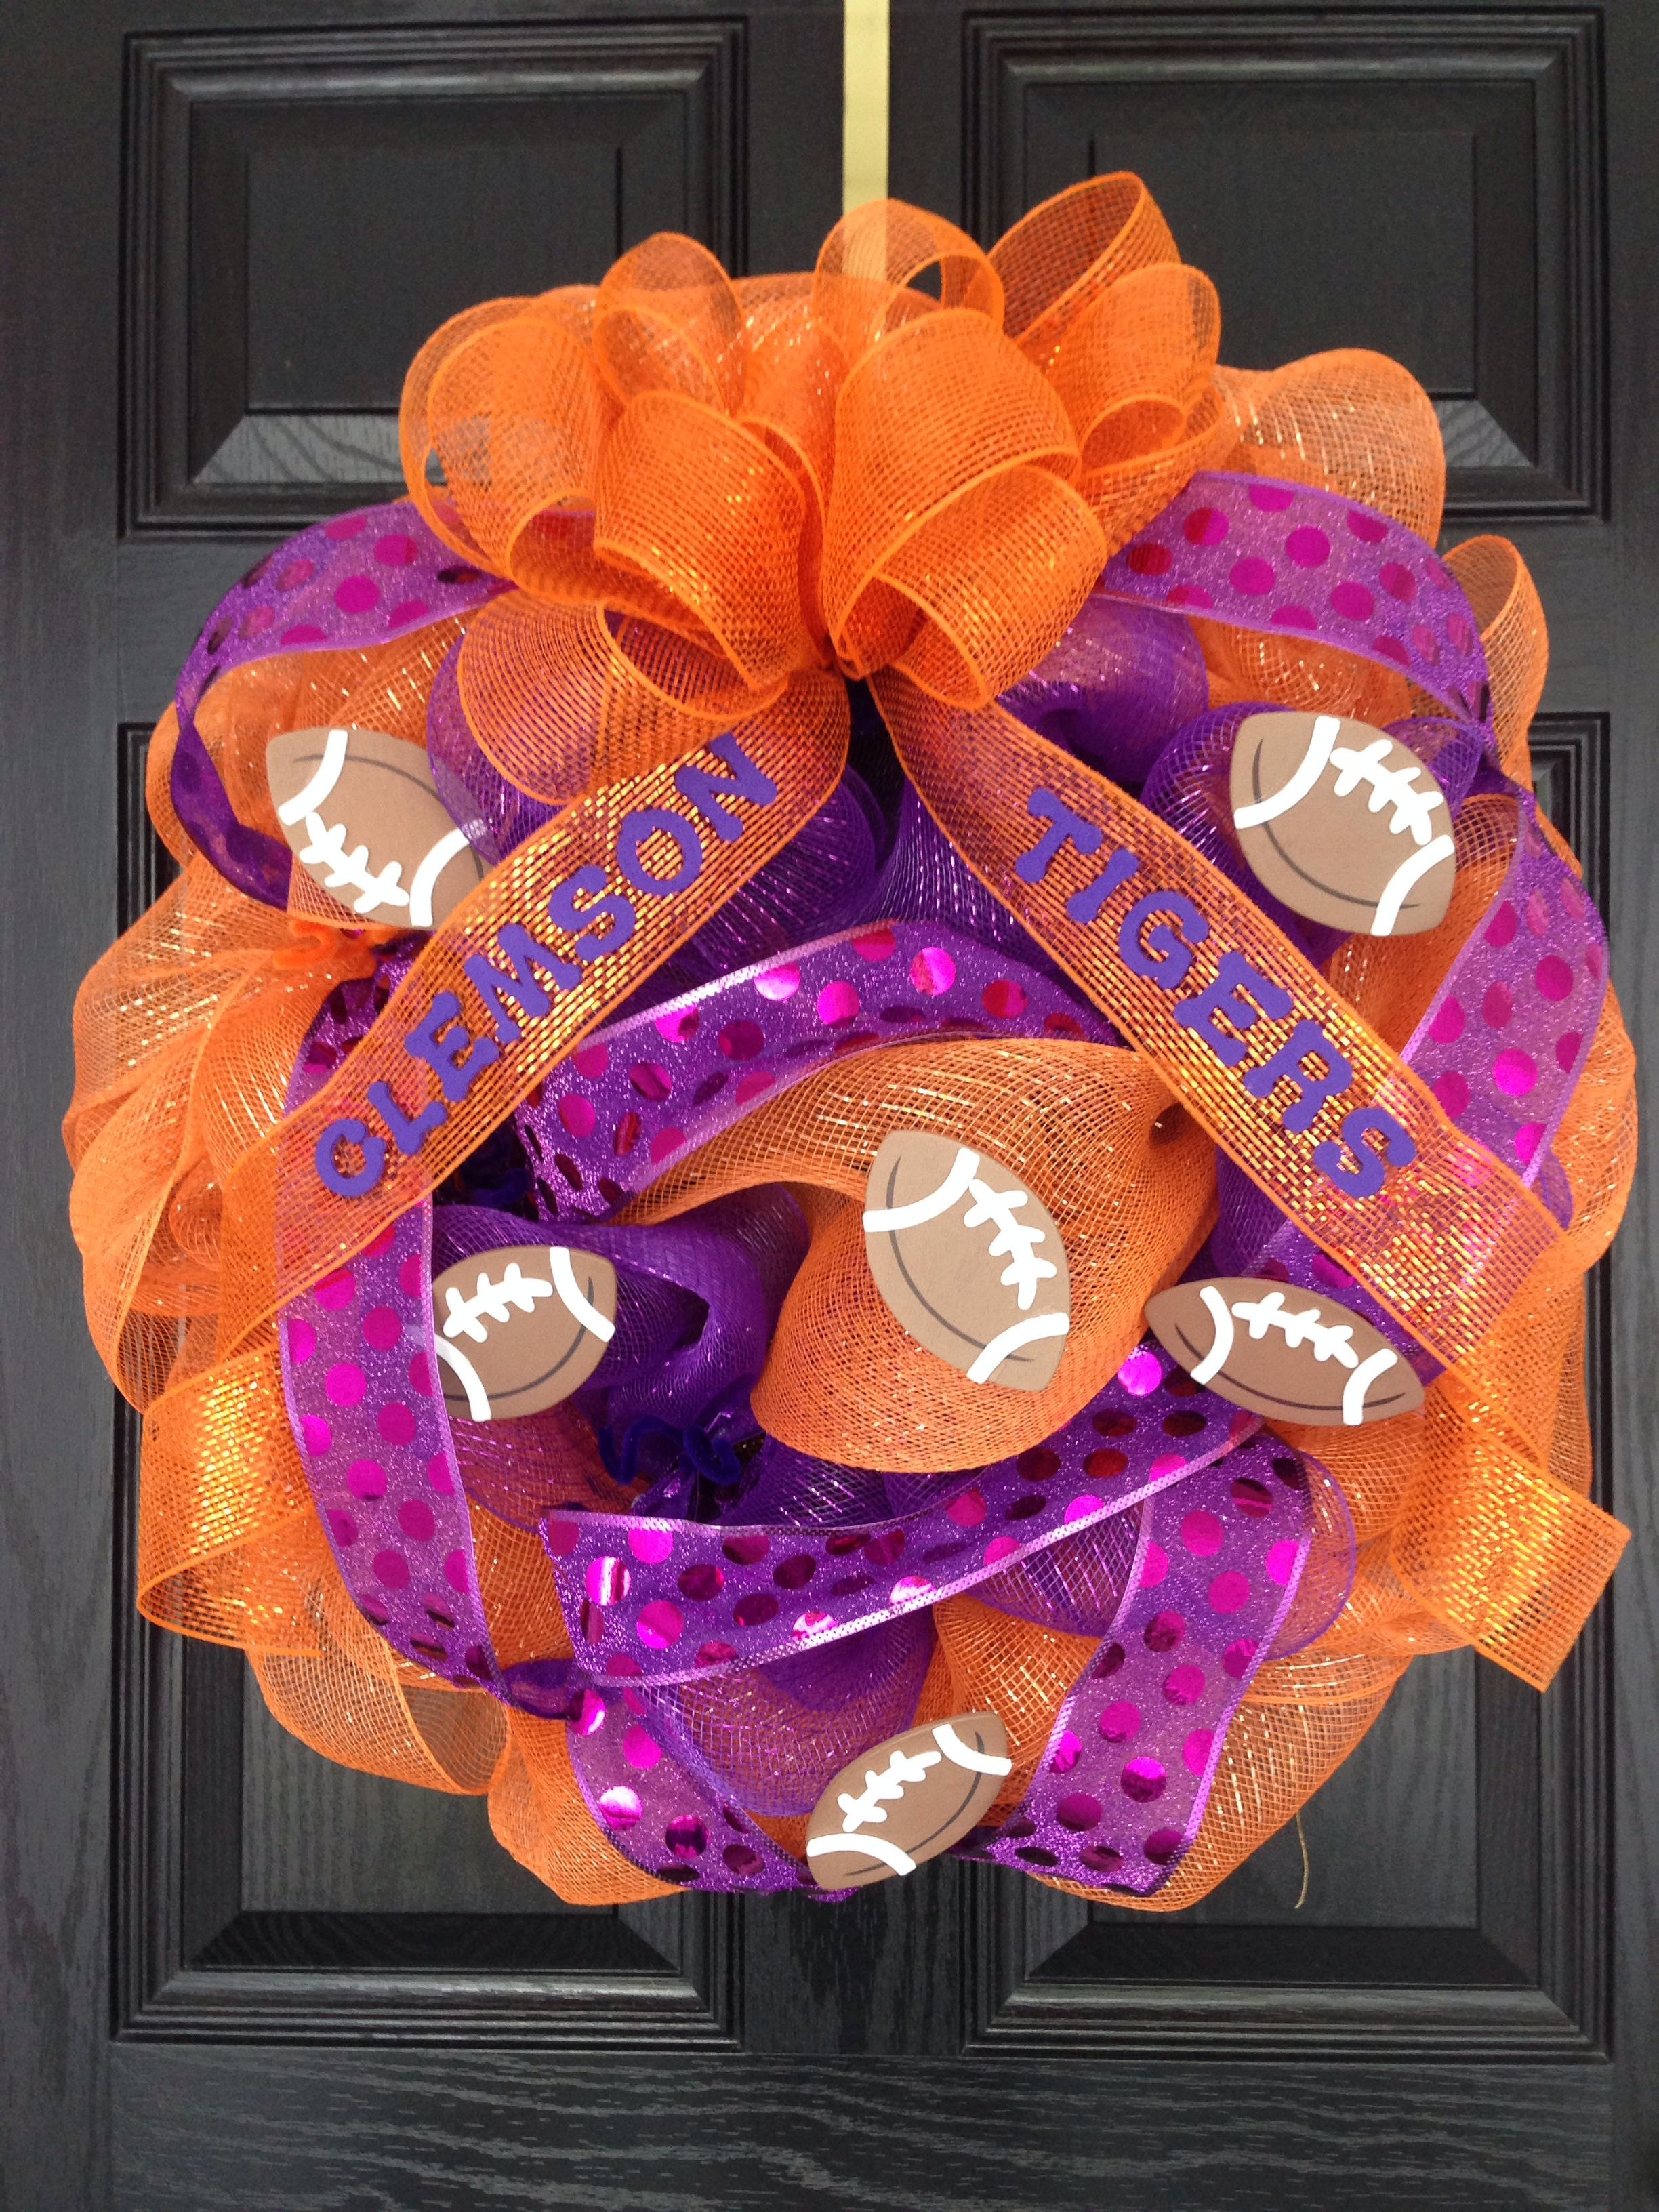 Clemson Pride..!! Go Tigers..!! Roar onto another great football season..!!